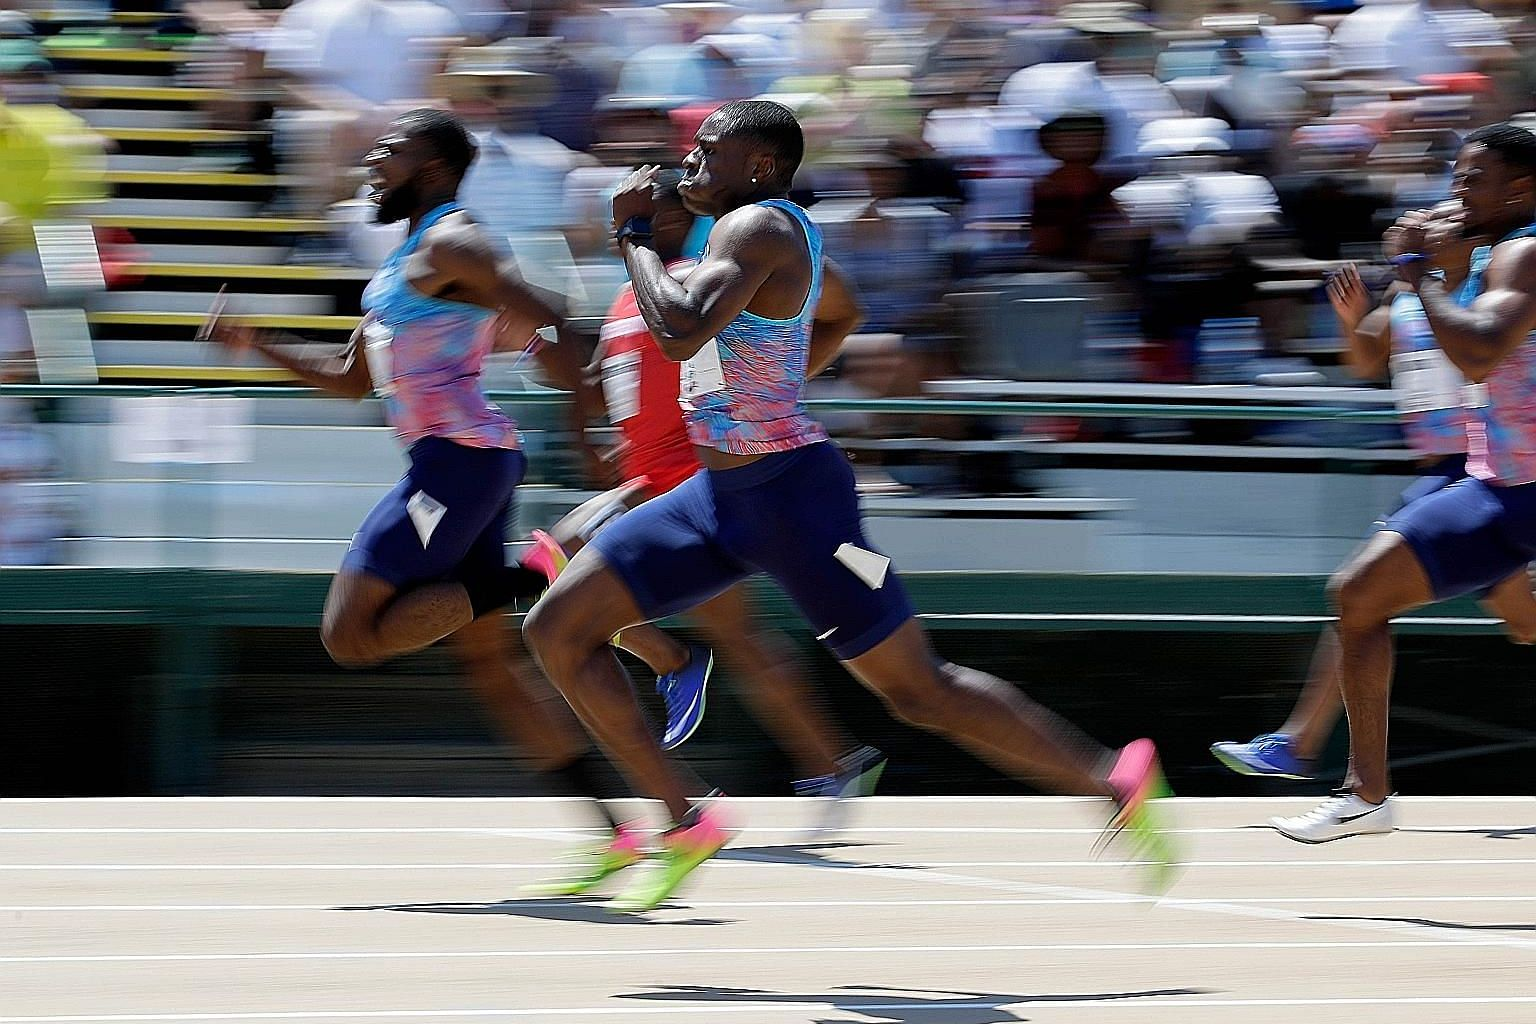 Christian Coleman chasing down Ameer Webb in the 200m final at the US championships at Hornet Stadium in Sacramento, California on Sunday, before losing out by a whisker.